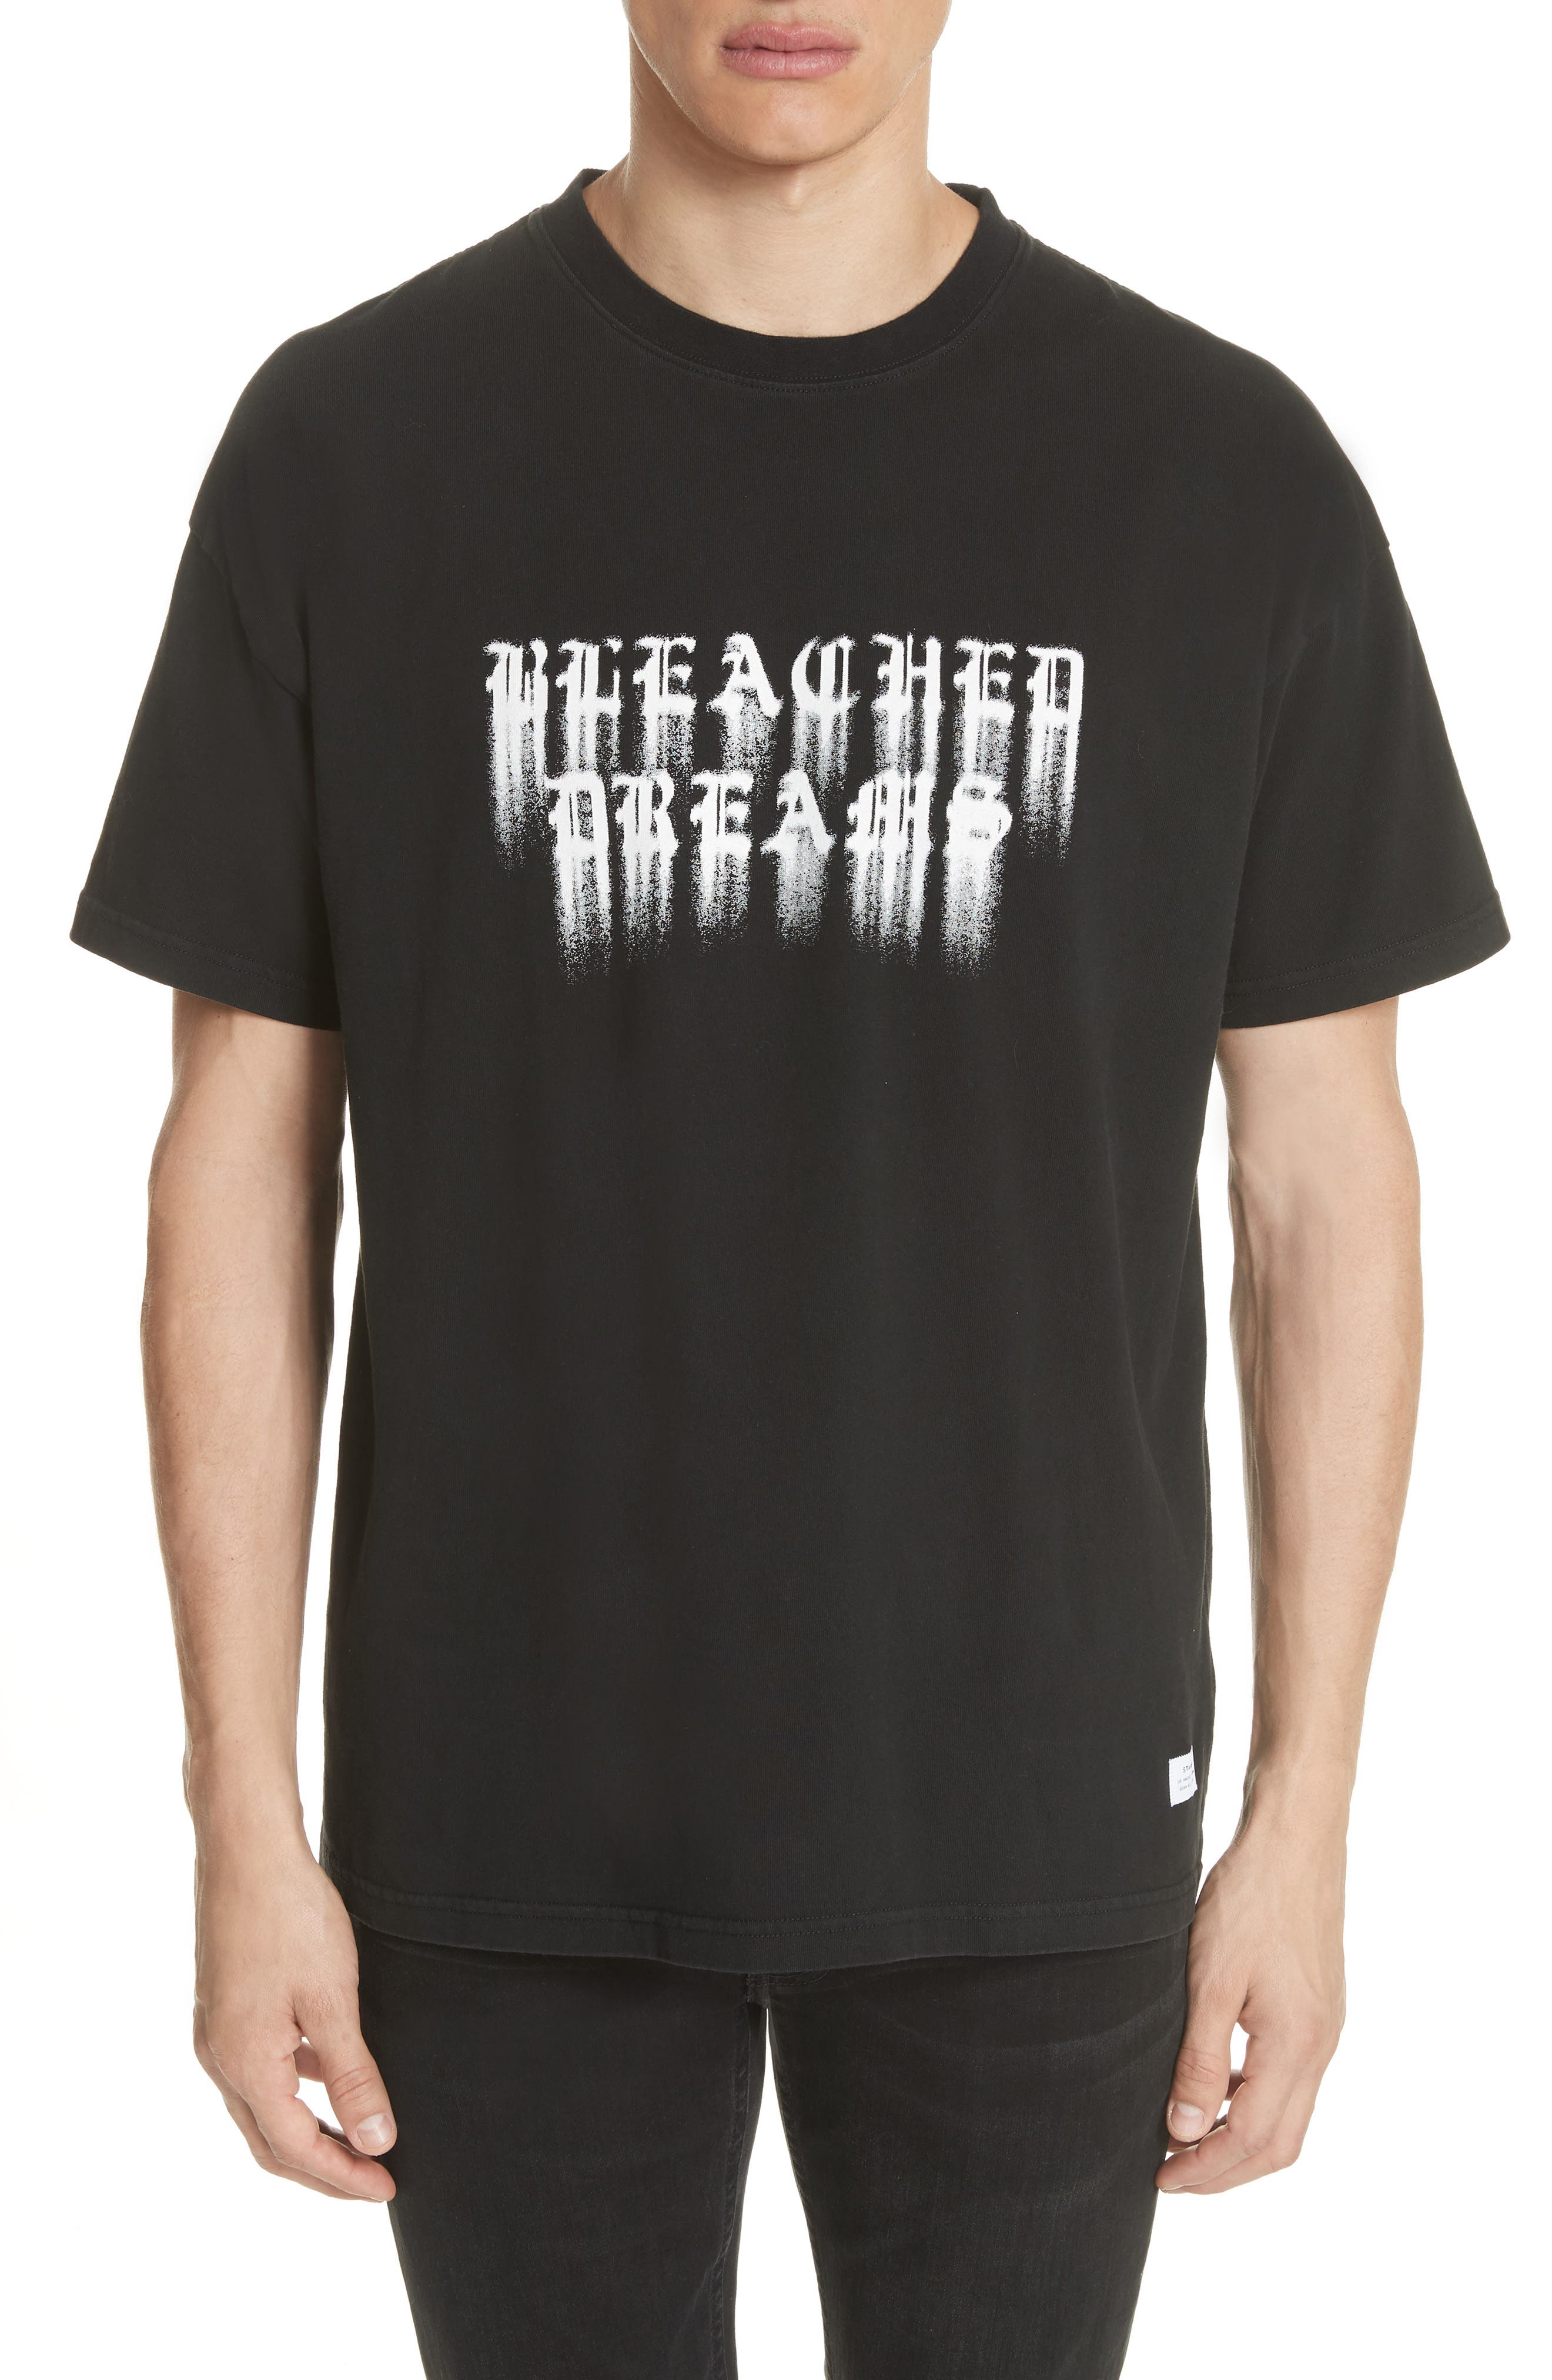 Main Image - STAMPD Bleached Dreams Graphic T-Shirt